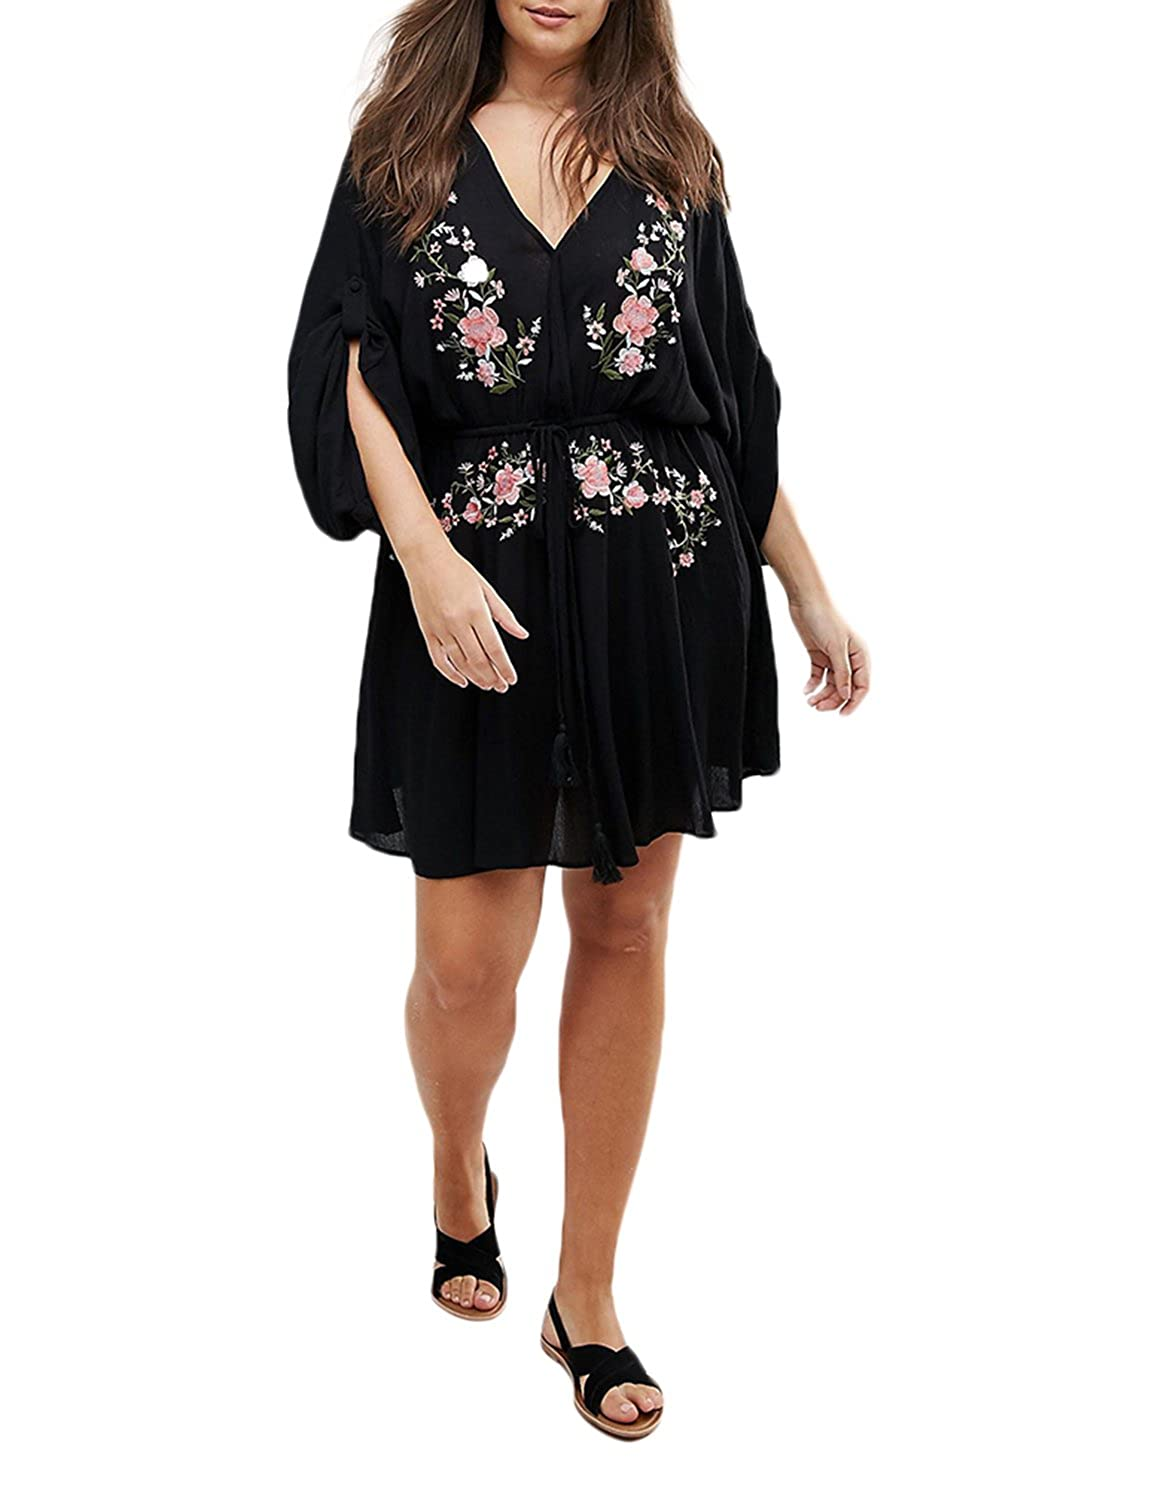 Richlulu Womens Floral Embroidery V-Neck Pleated Tight Waist Mini Dress